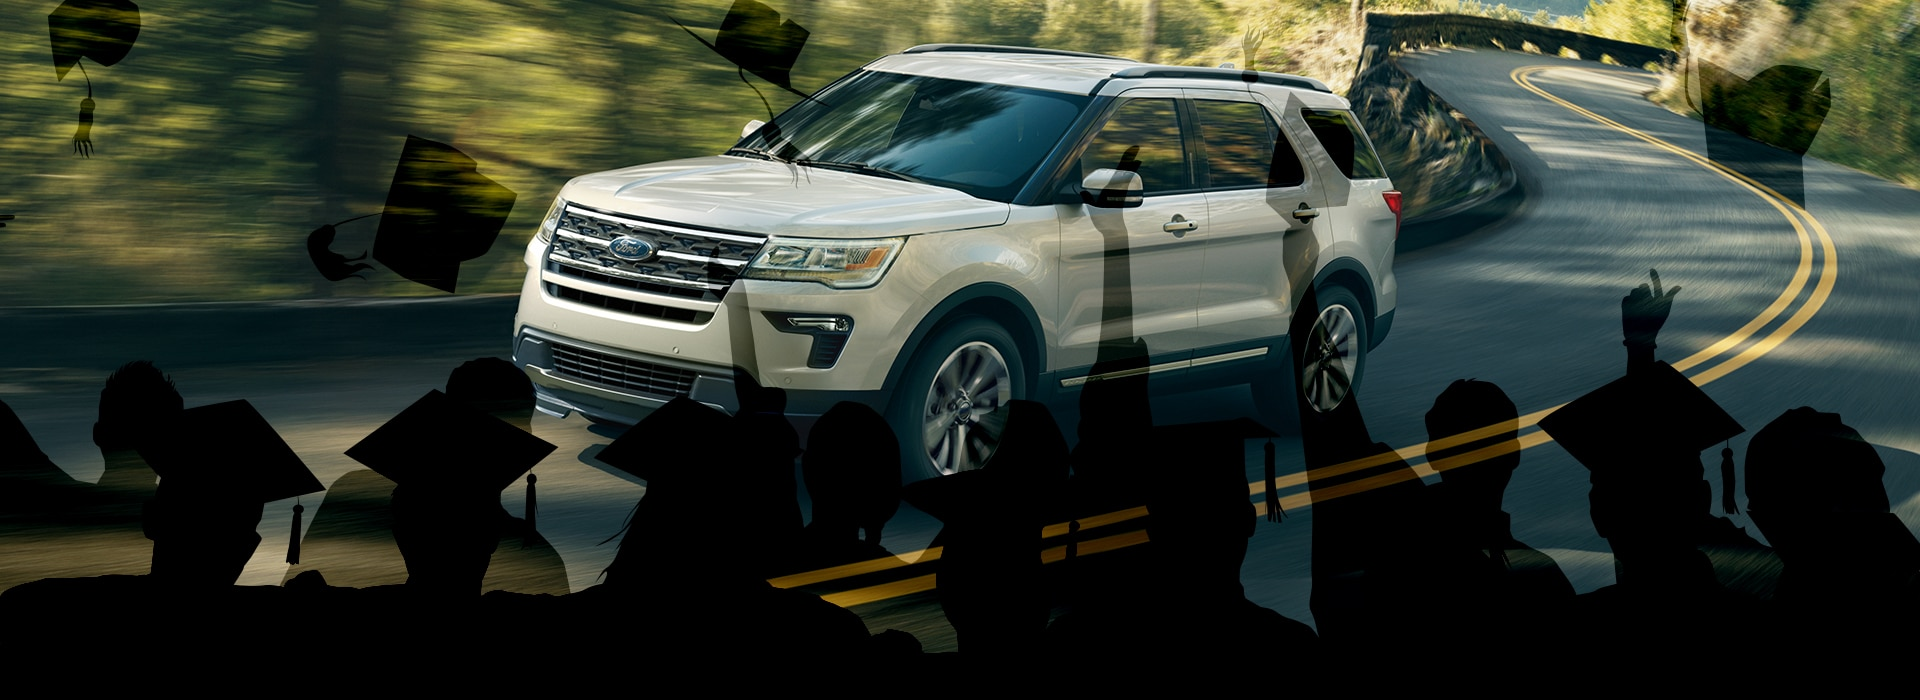 Ford Dealership Dallas >> Ford College Grad Rebate Jack Powell Ford Ford Dealer Dallas